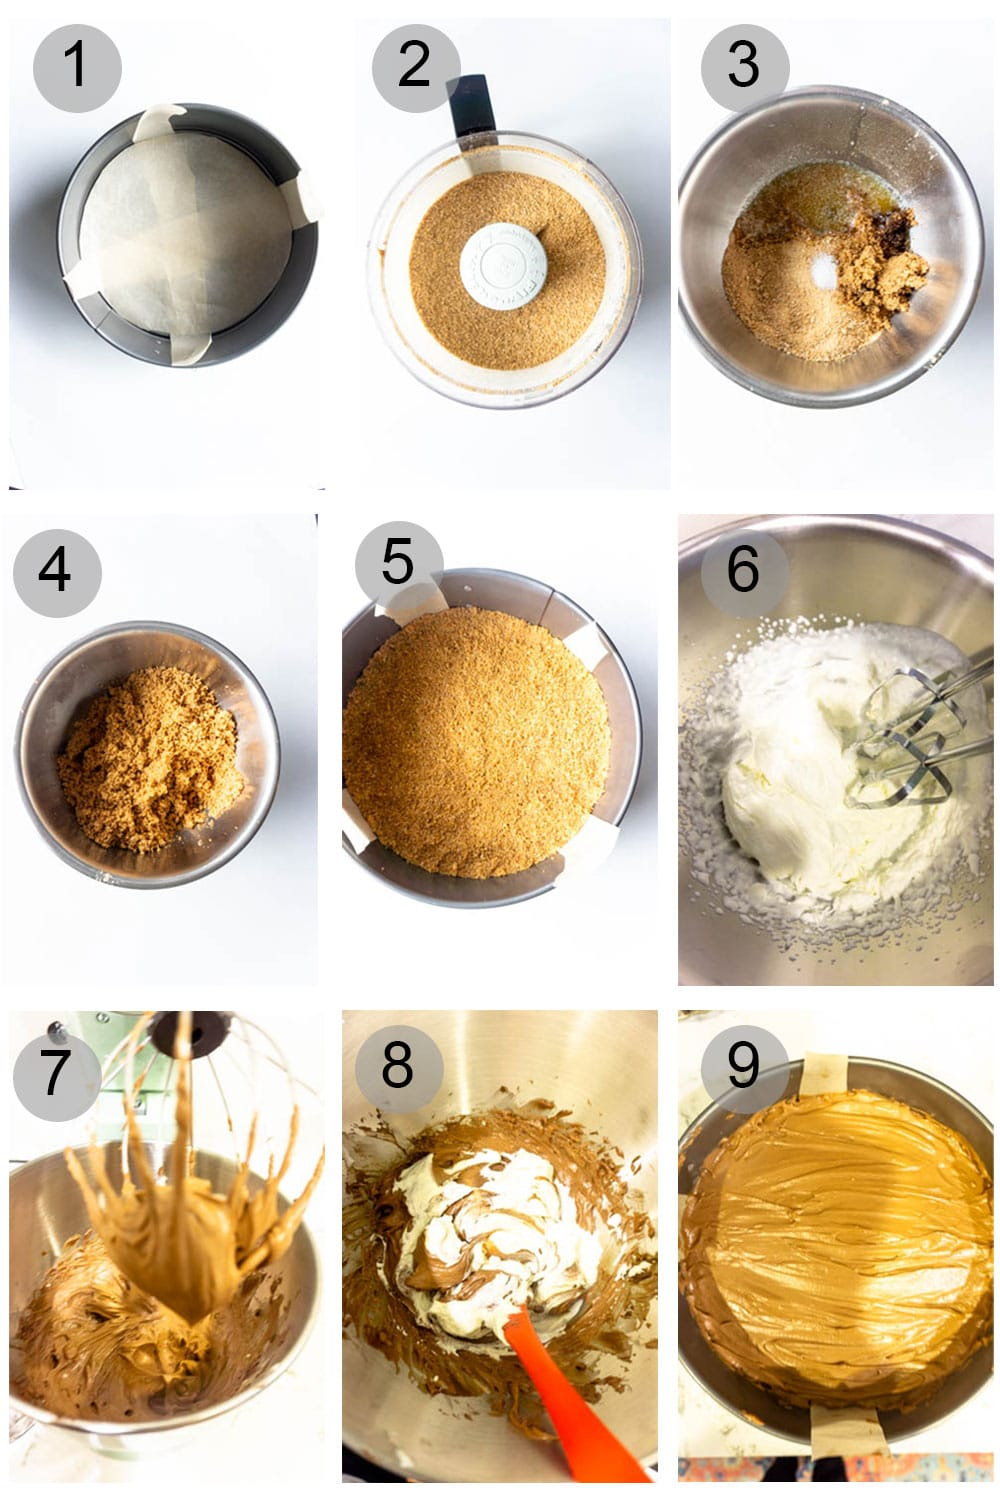 Step-by-Step Photos on how to make a Nutella Tart